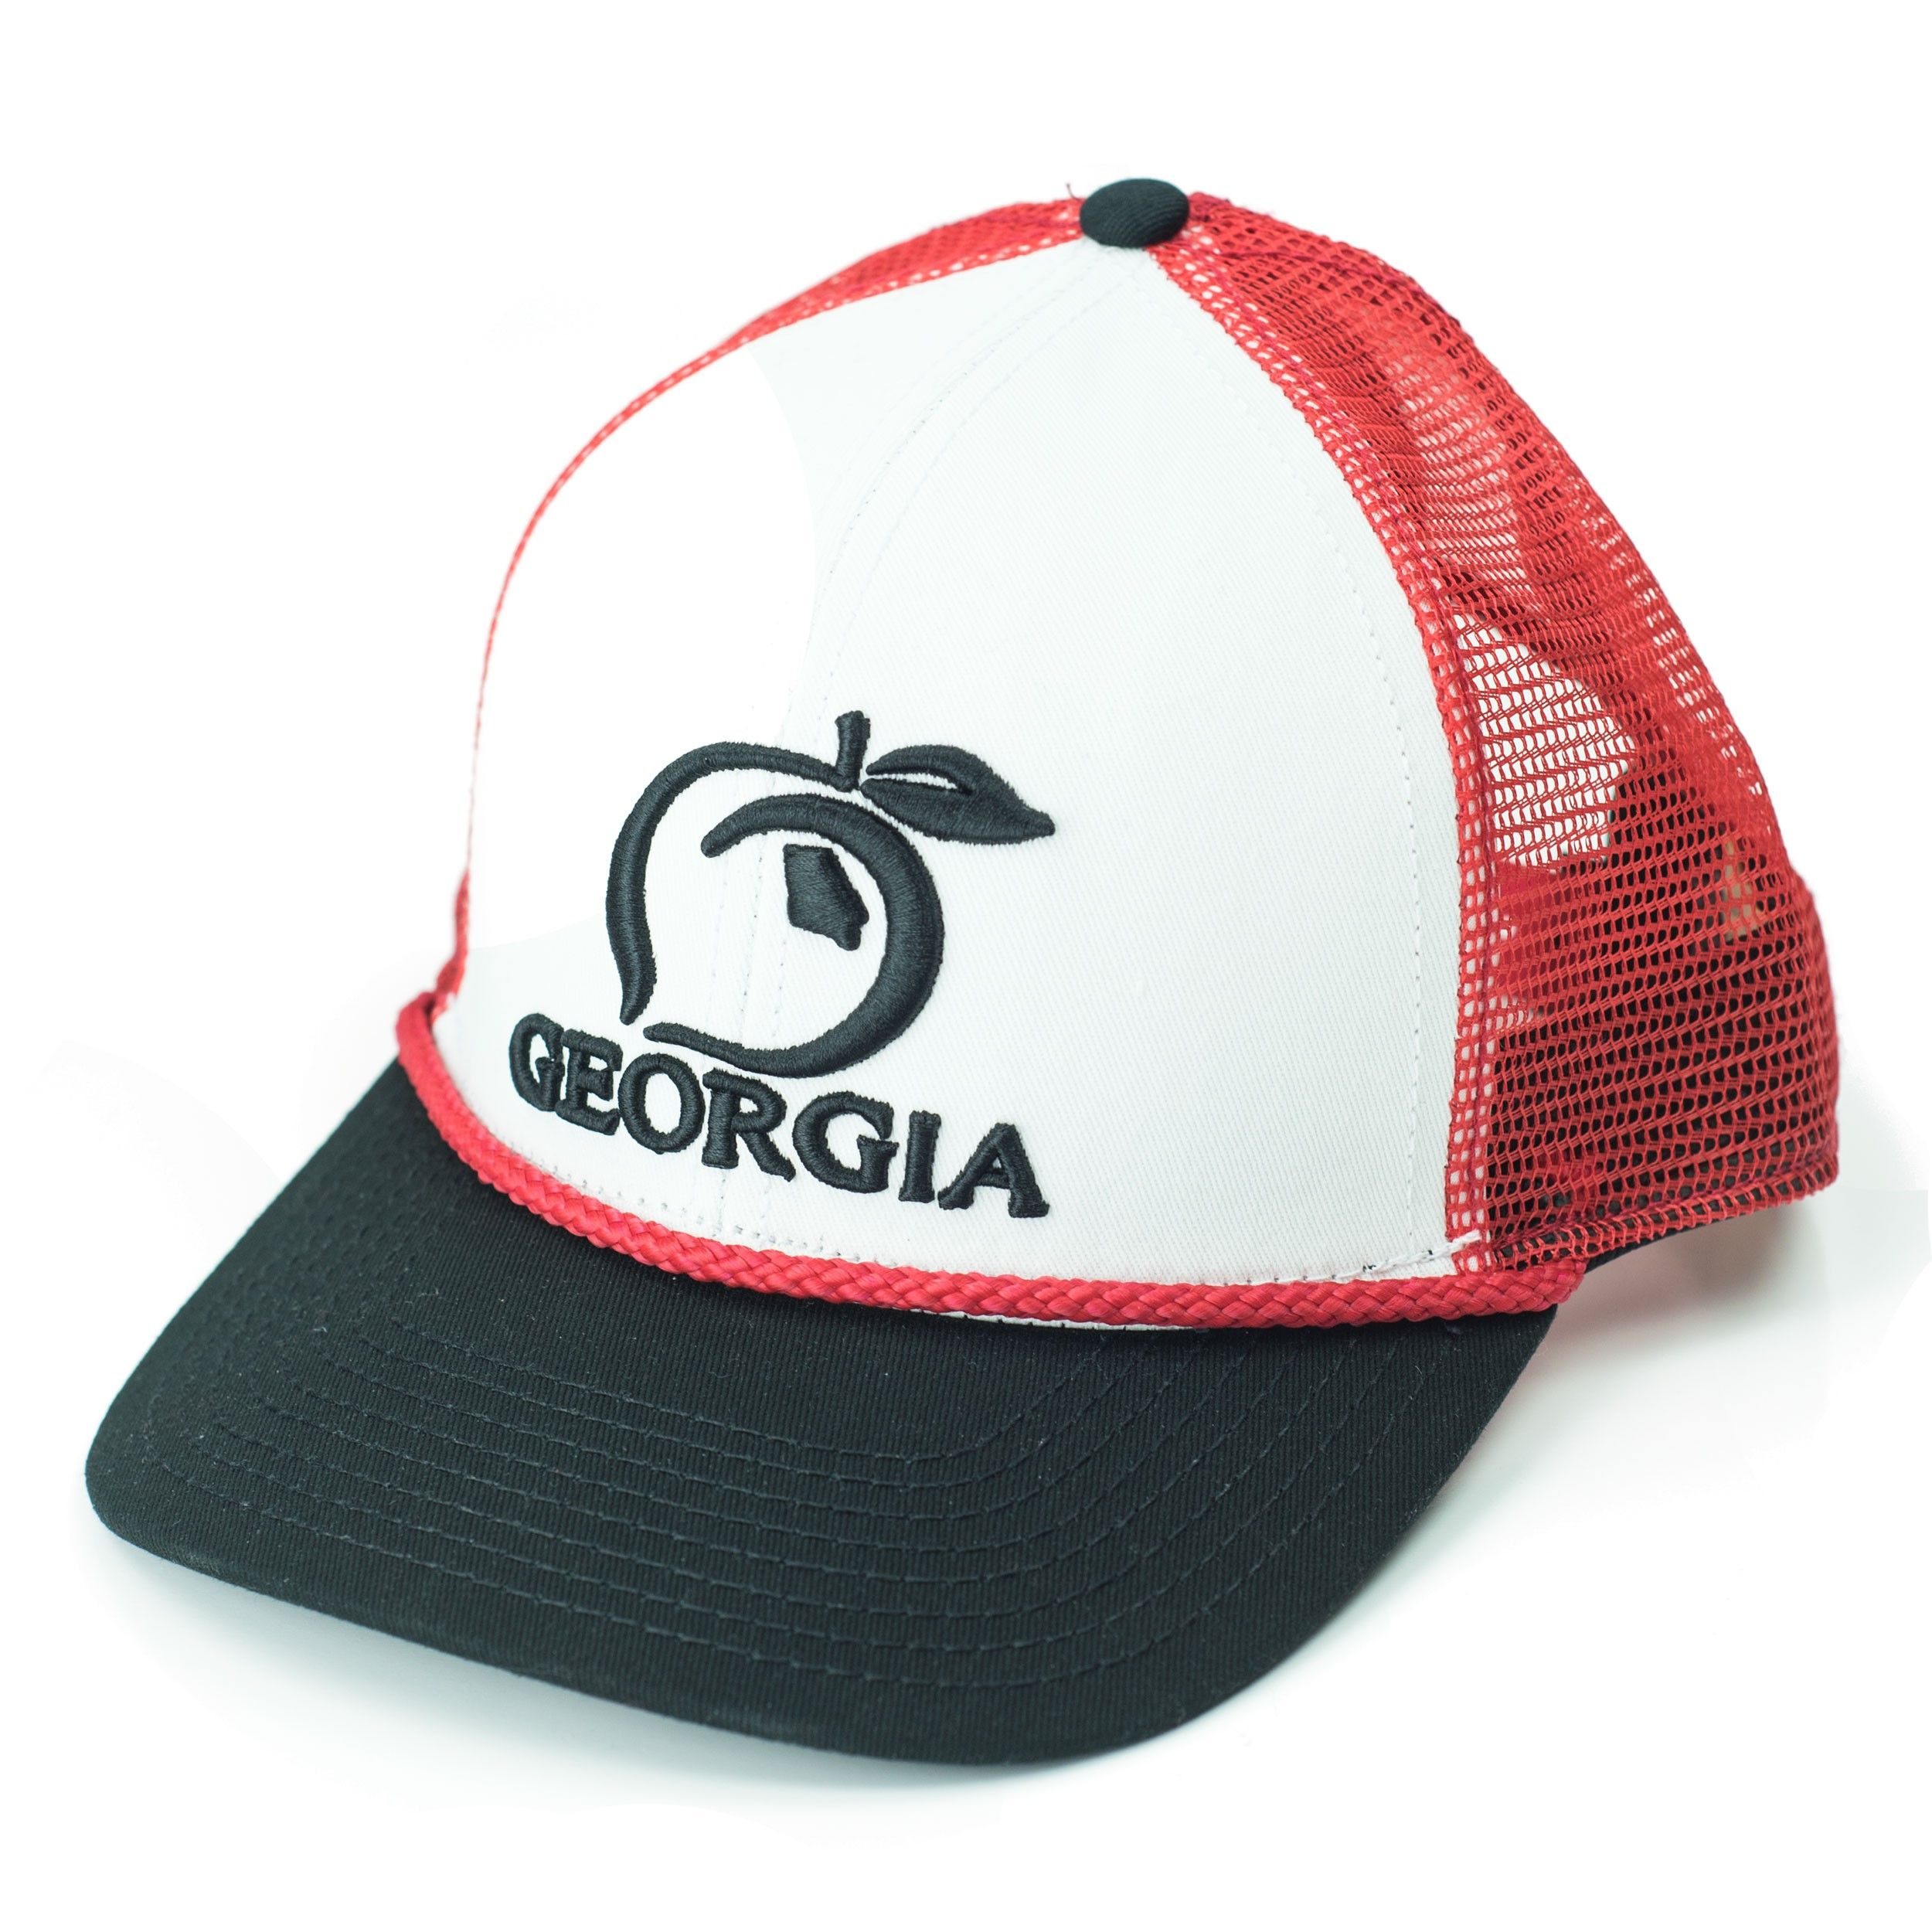 36ada5726dc69d The Peach State Pride Trucker Hat in Red/White/Black - Low profile  structured cap with a cotton/polyester twill front and a nylon mesh back  with an ...